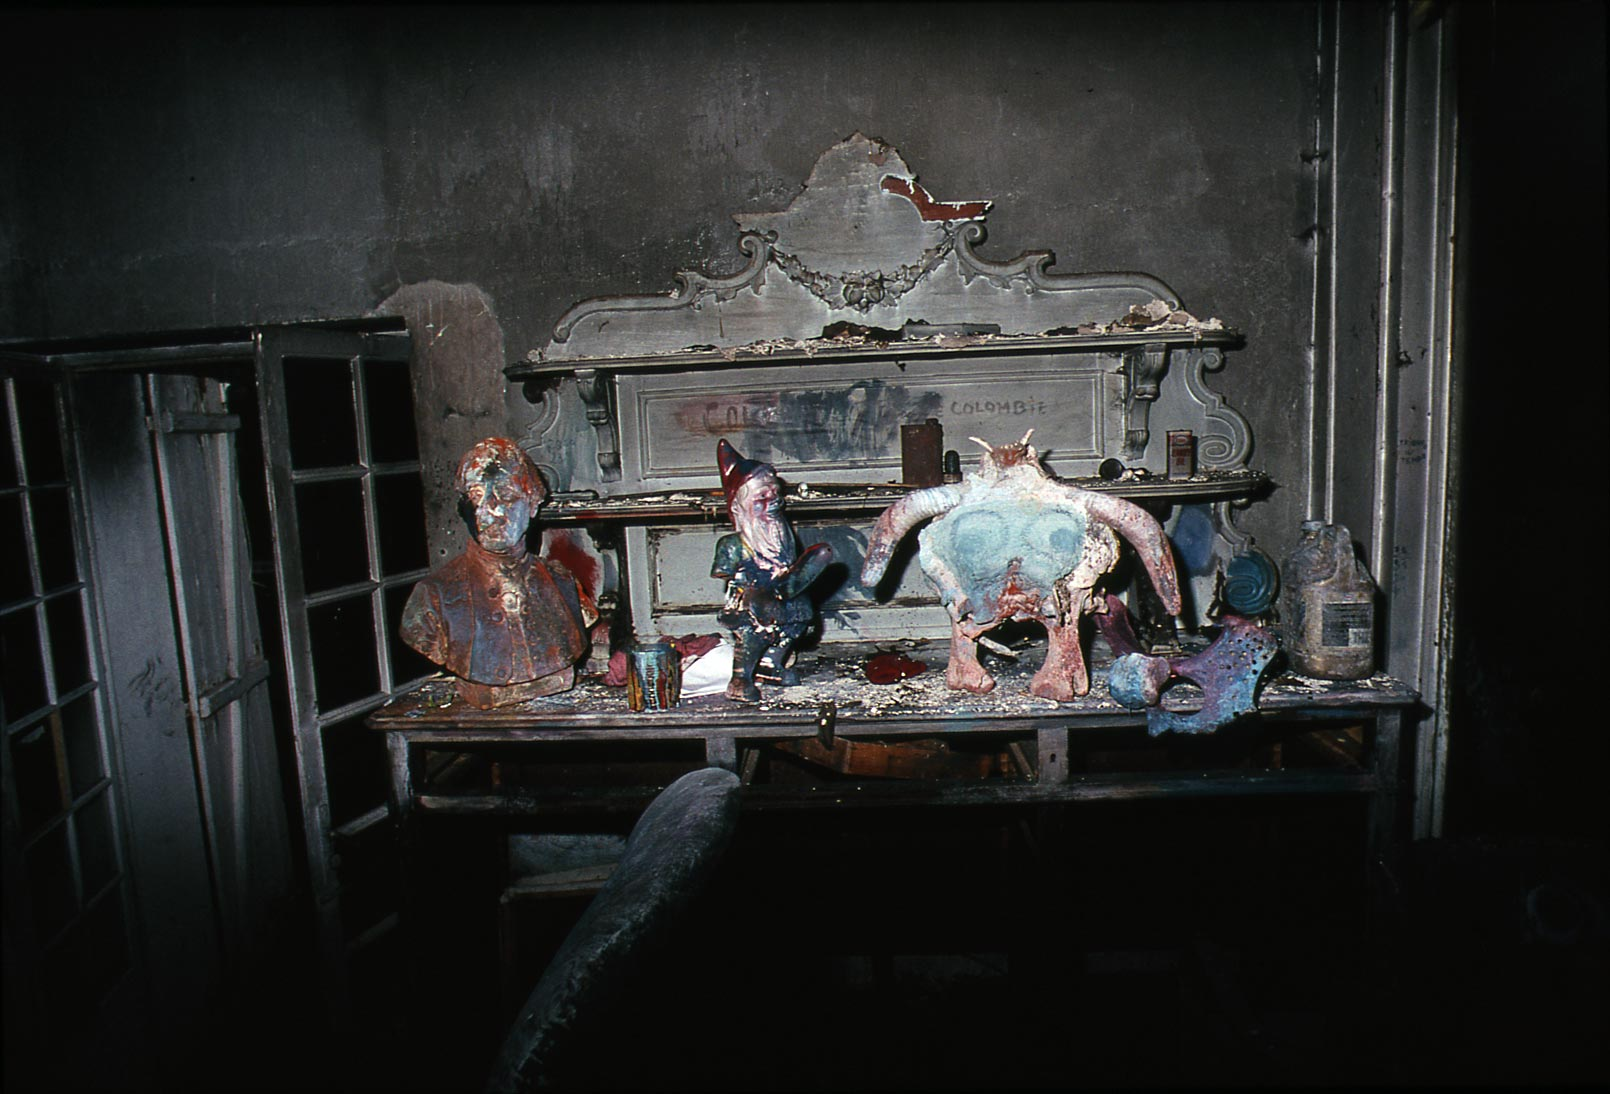 Dado's studio after the fire in 1988